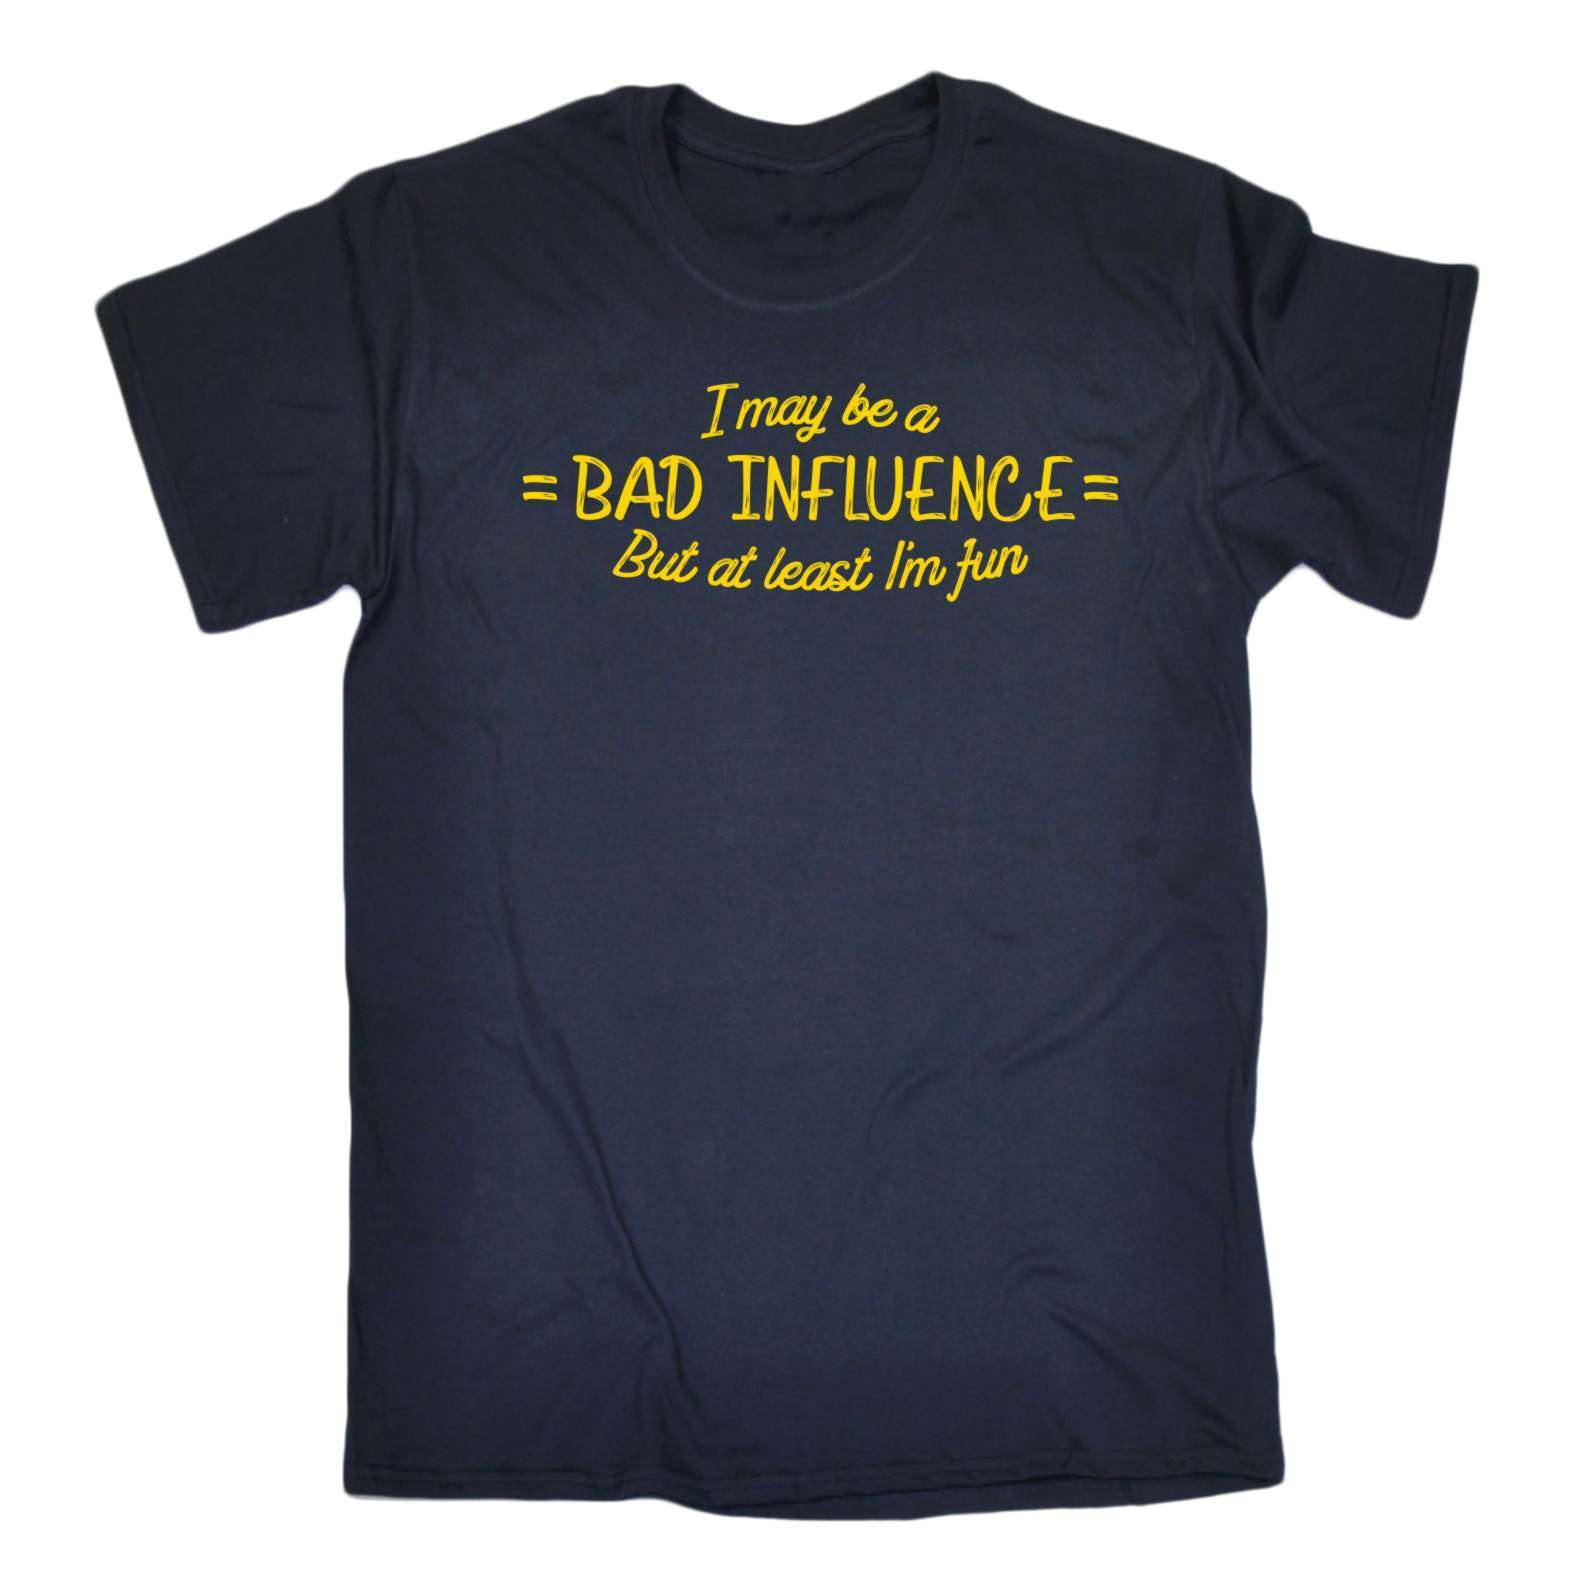 T Shirt Men Summer Casual I May Be A Bad Influence But At Least Im Fun Funny Joke Comedy Humour T-SHIRT